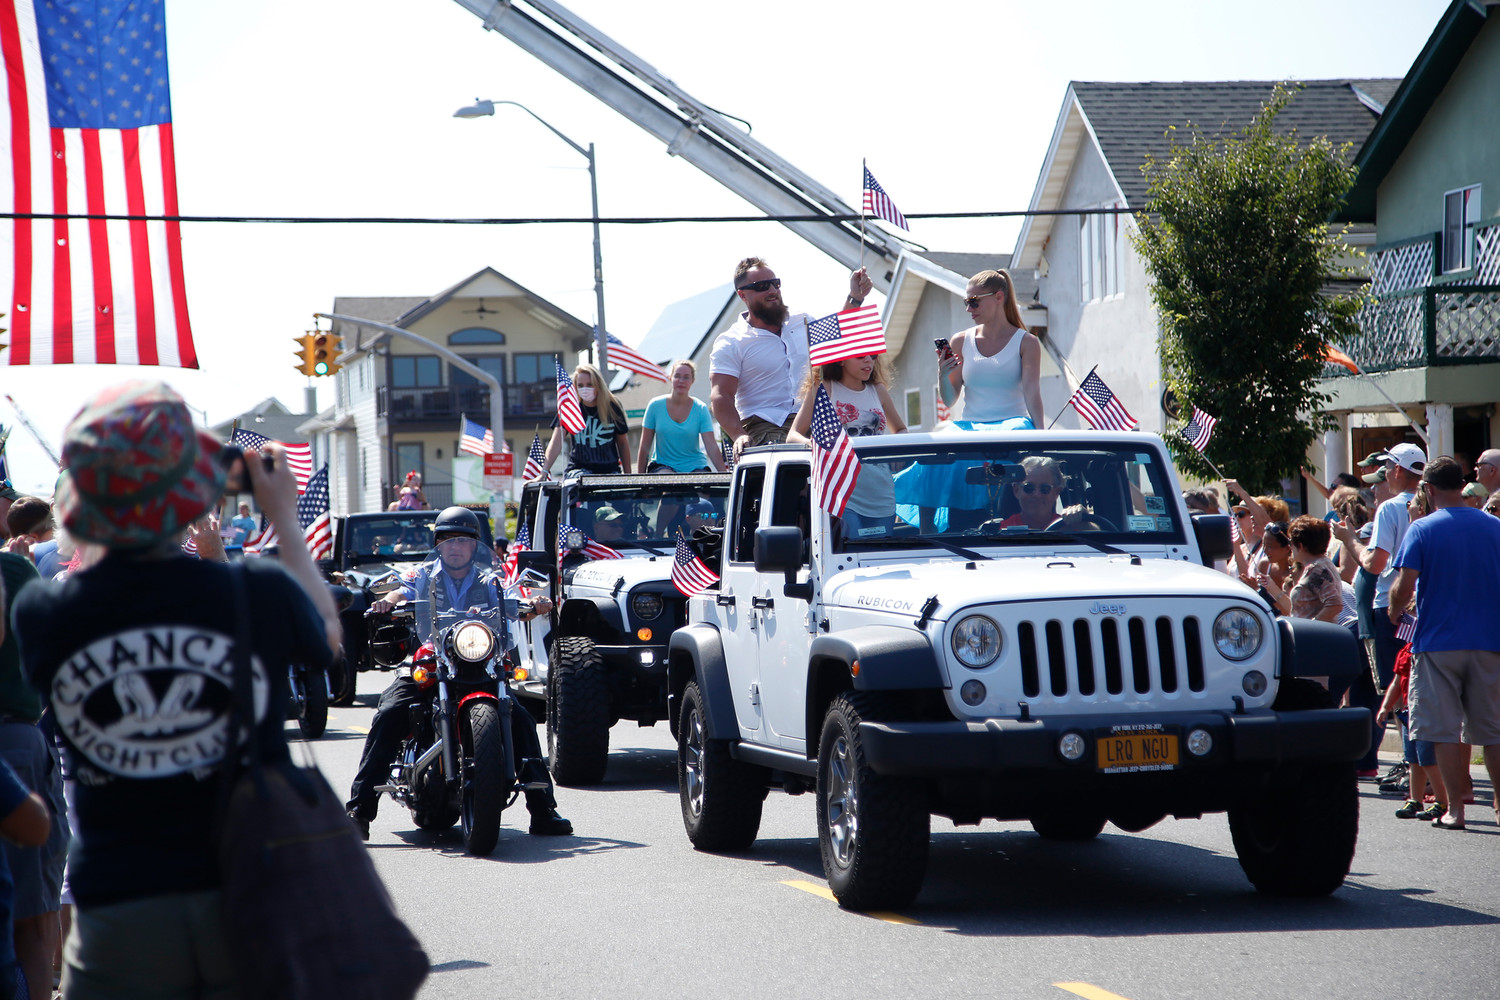 Hundreds of people participated in last year's Long Beach Waterfront Warriors Welcome Parade along West Beech Street to honor soldiers recuperating from combat.